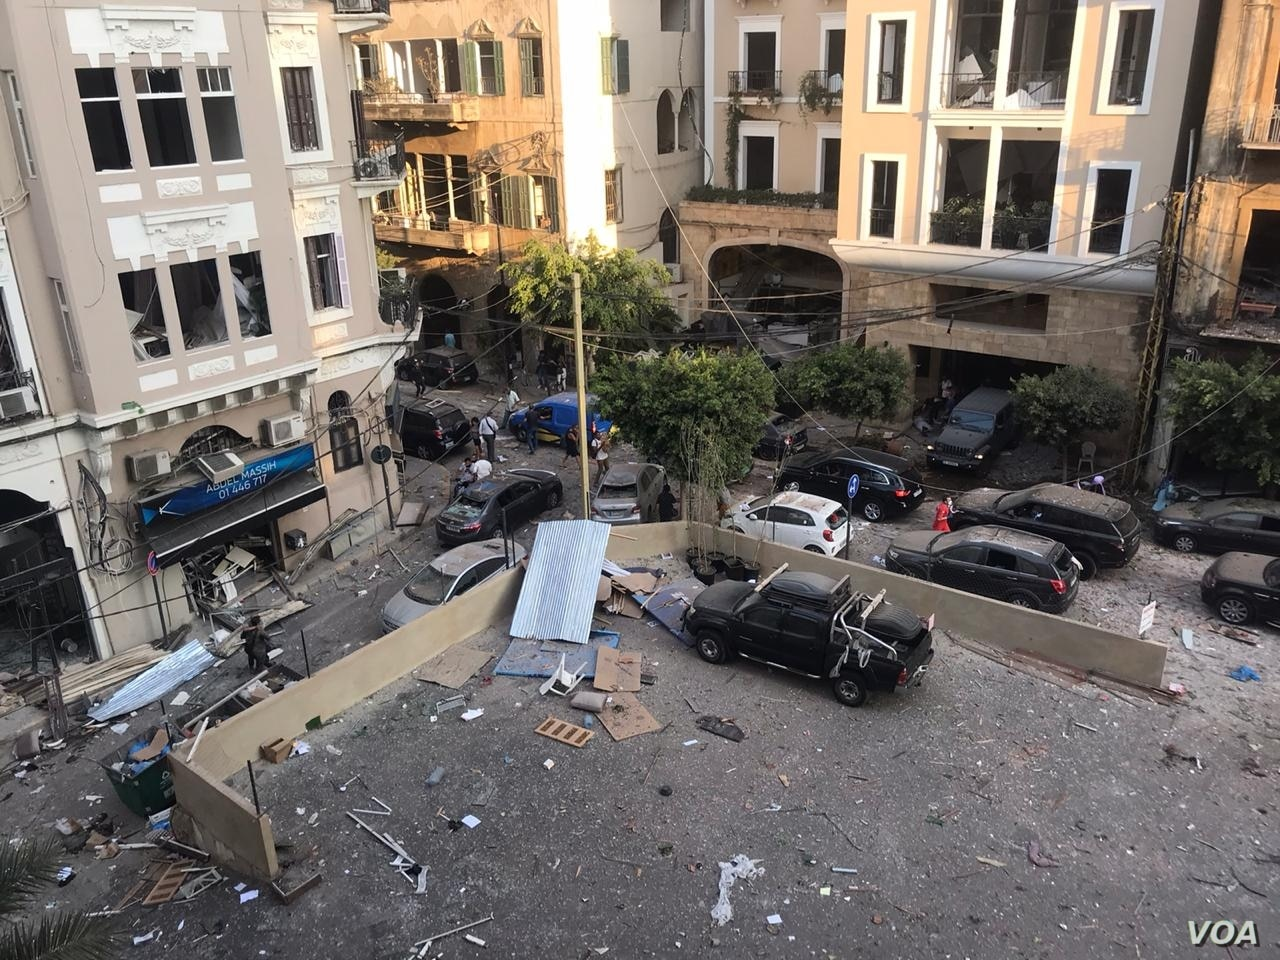 Beirut lies in ruins after massive explosion